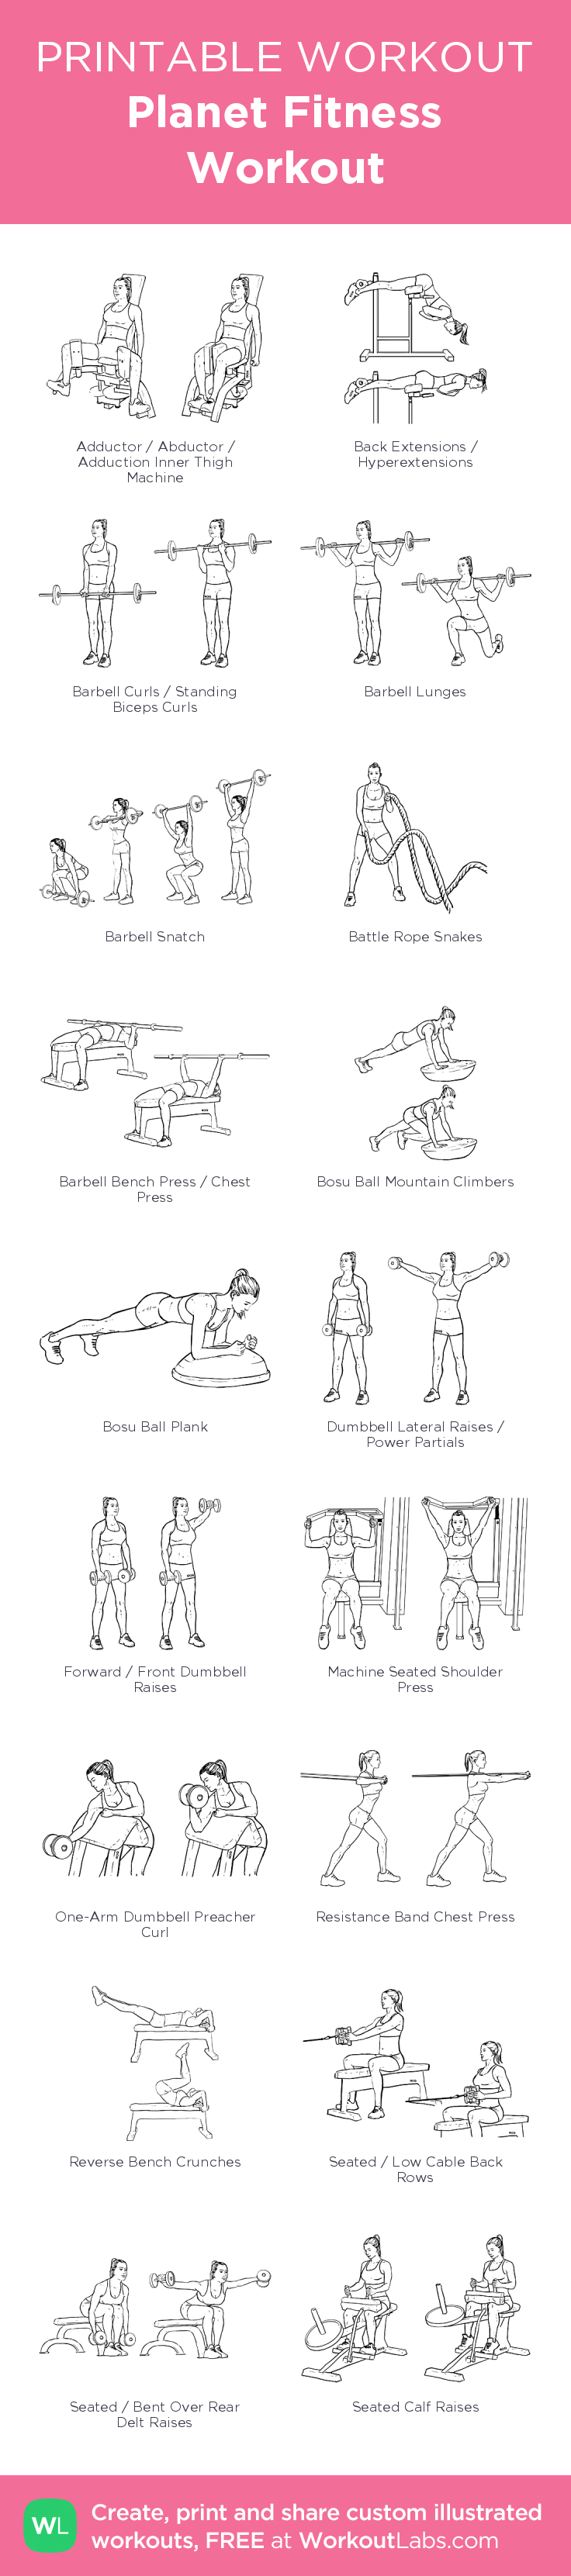 Planet Fitness Workout Illustrated Exercise Plan Created At Planet Fitness Workout Planet Fitness Workout Plan Full Body Workout Routine